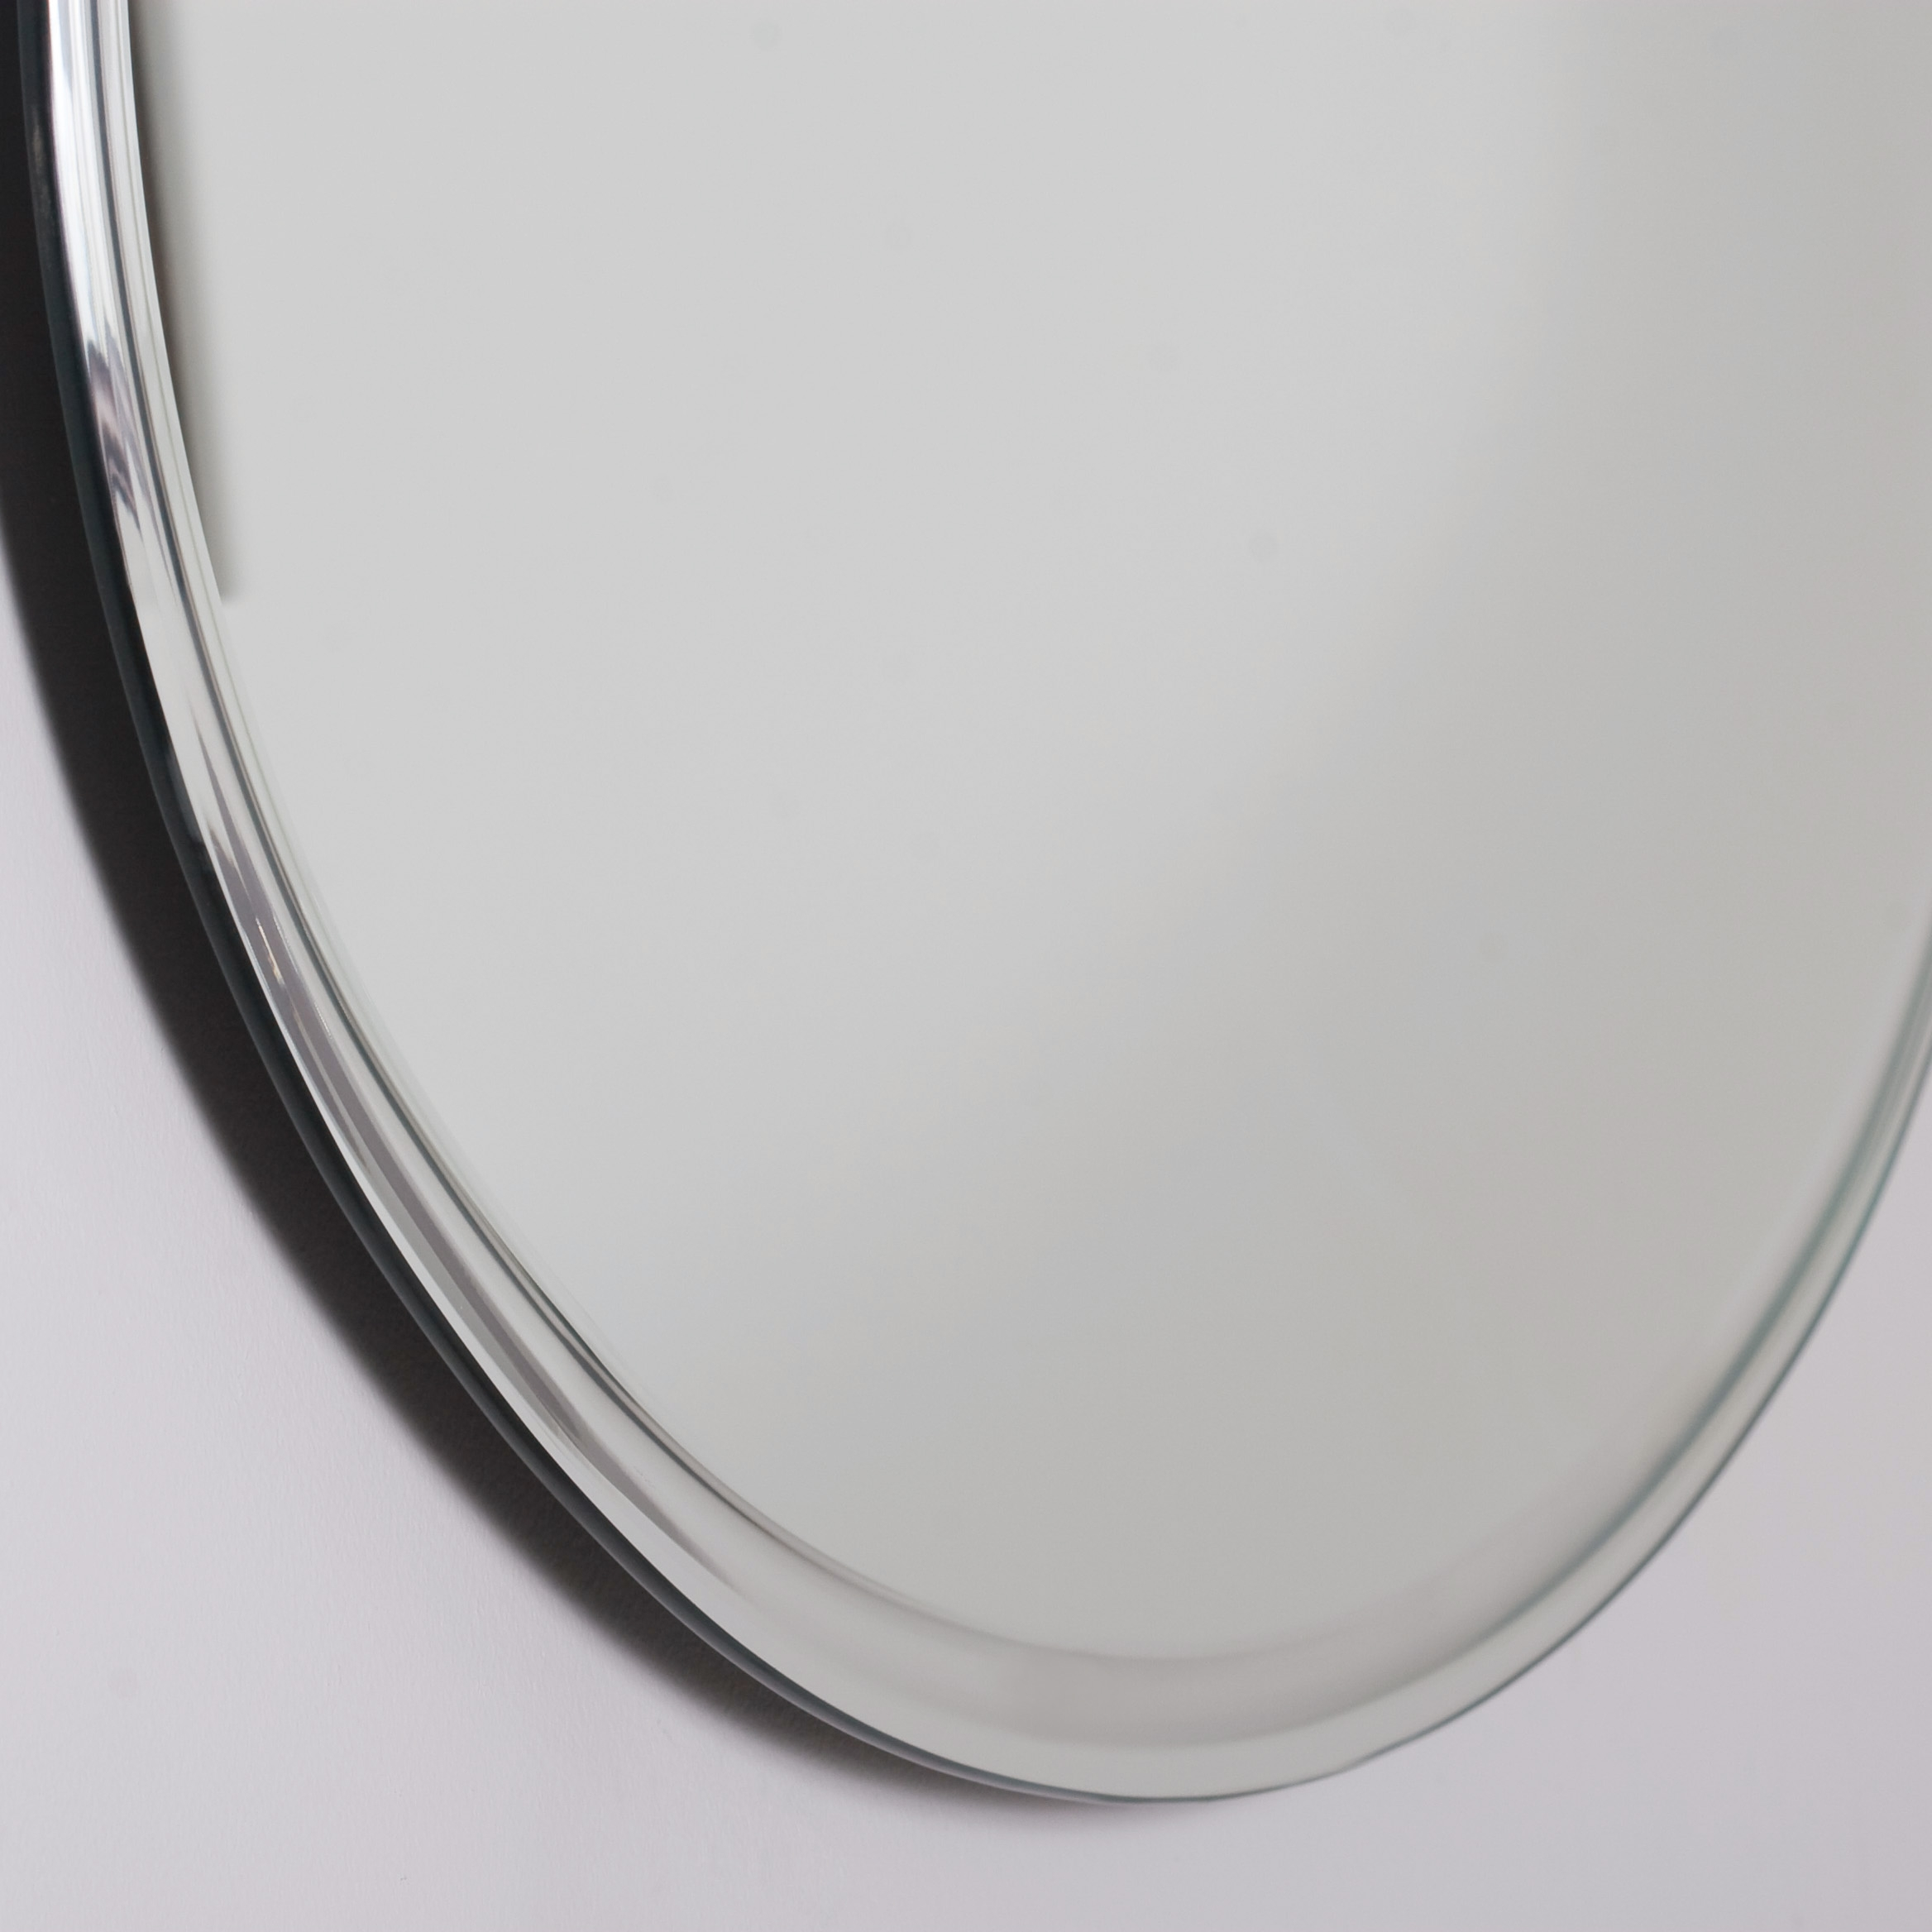 Decor Wonderland Extra Long Oval Wall Mirror Beyond Stores With Long Oval Mirror (View 11 of 15)